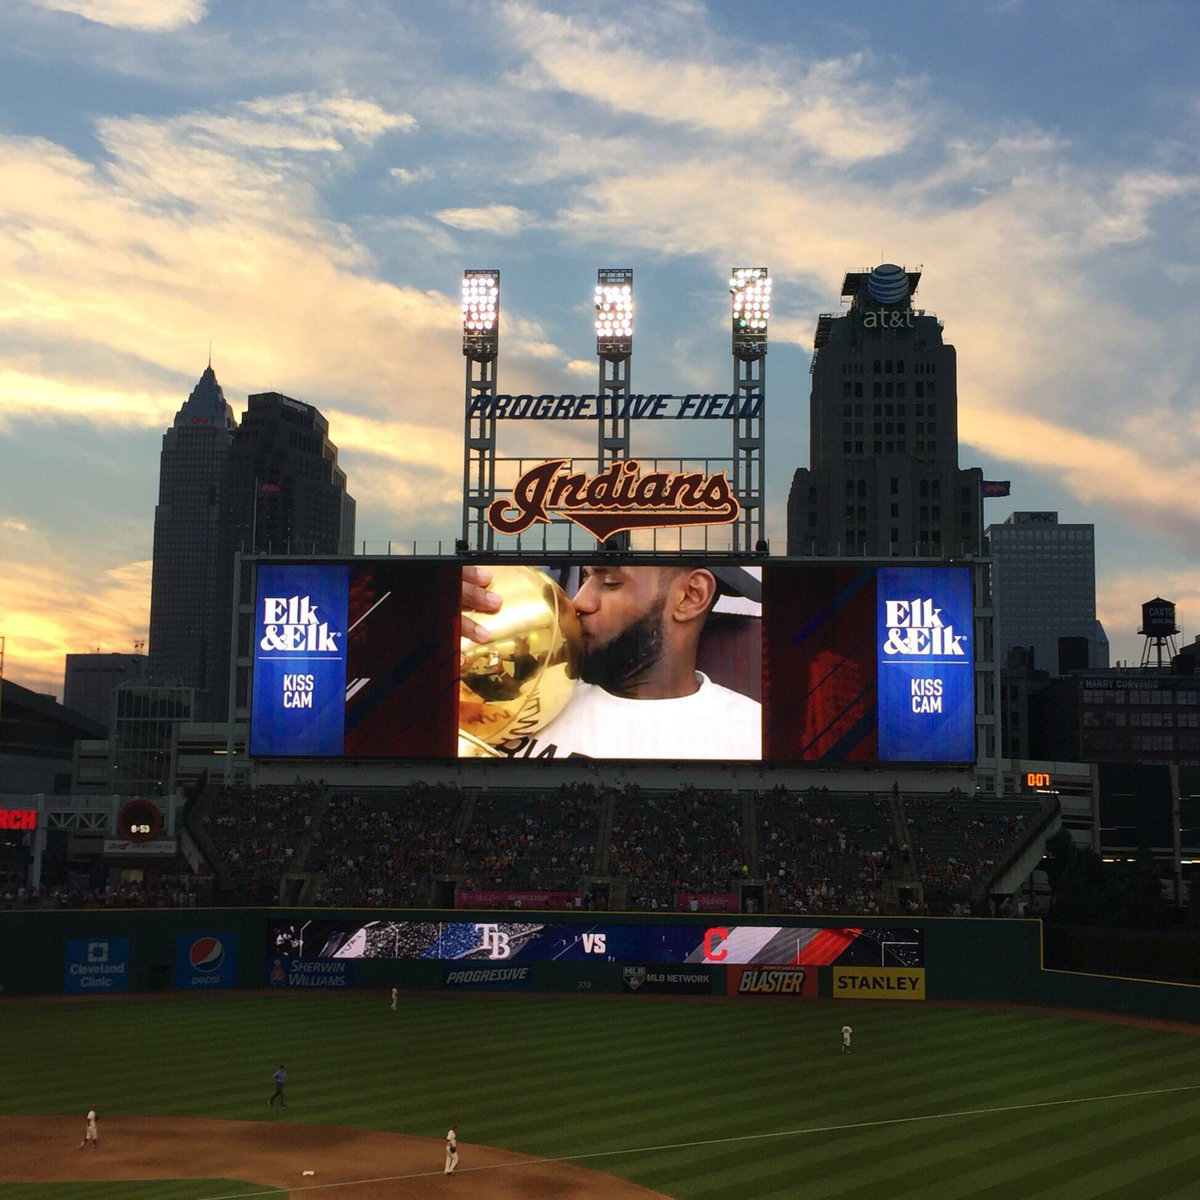 .@KingJames and Larry made the kiss cam at the @Indians game tonight!! #RollTribe #ALLin216  #Believeland https://t.co/1oM1NPUgo4